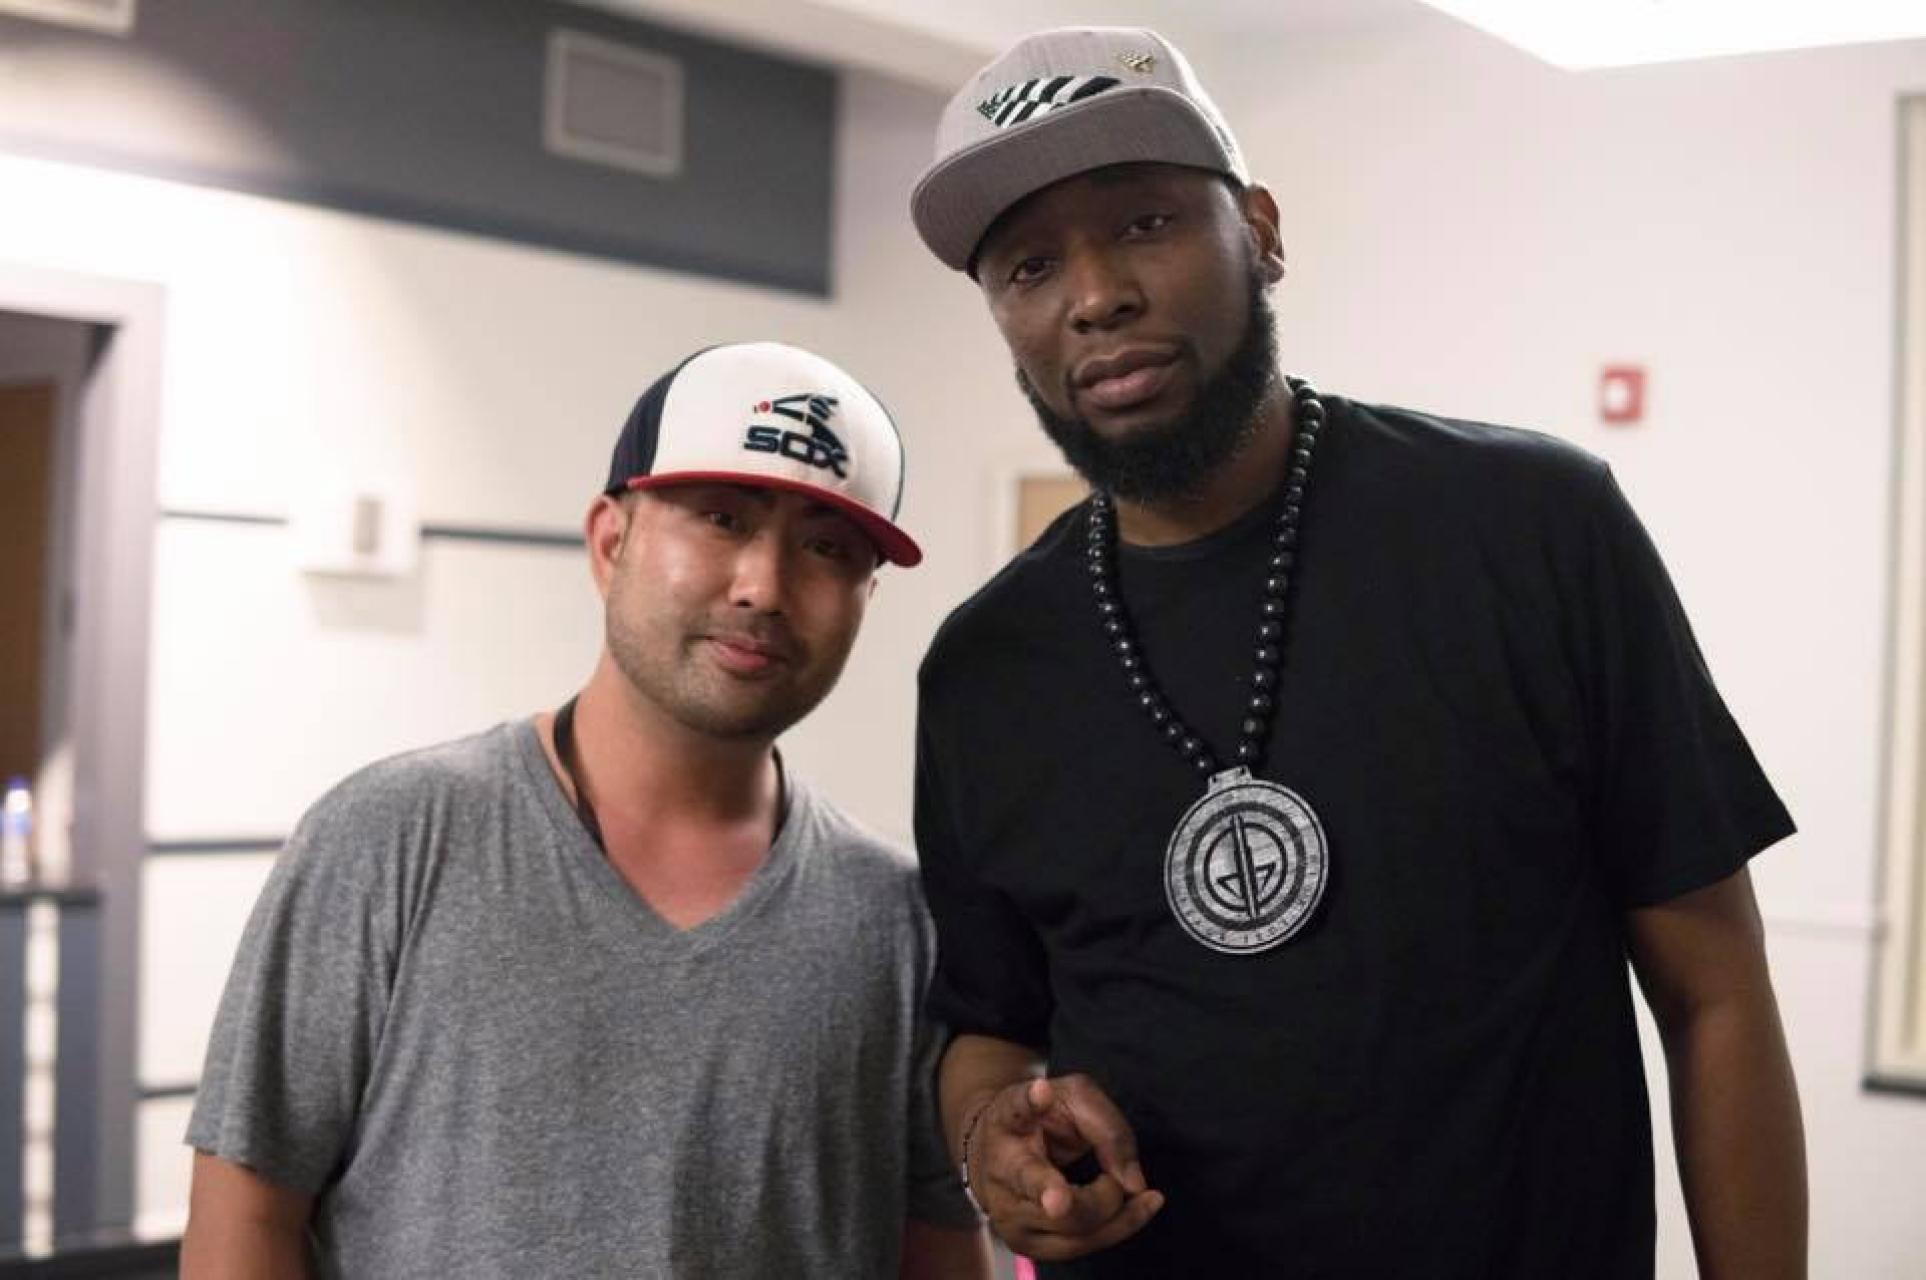 Cameron Lee, founder of CLTure, and 9th Wonder